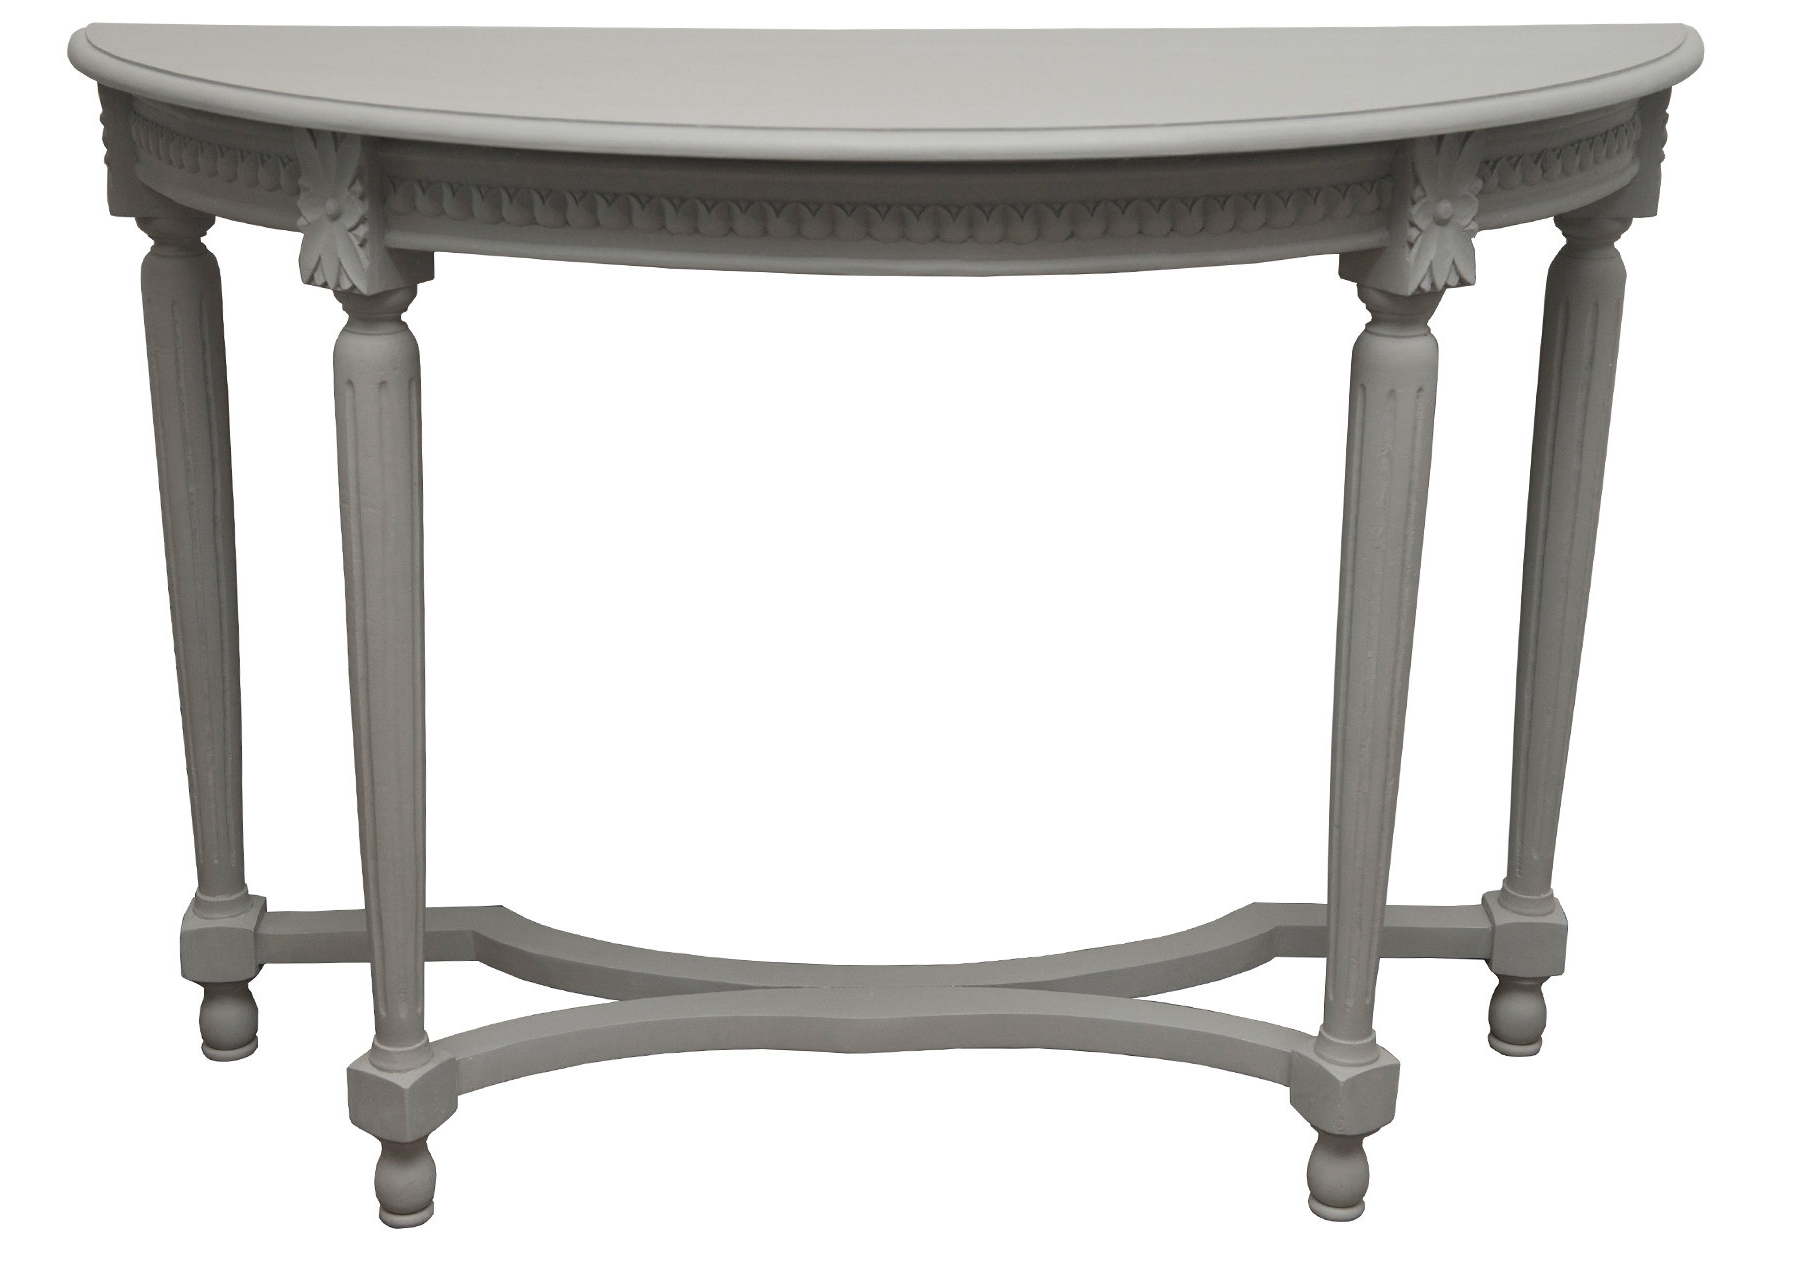 Clairemont Demilune Console Tables Regarding Most Current One Allium Way Vaughan Console Table (View 5 of 20)